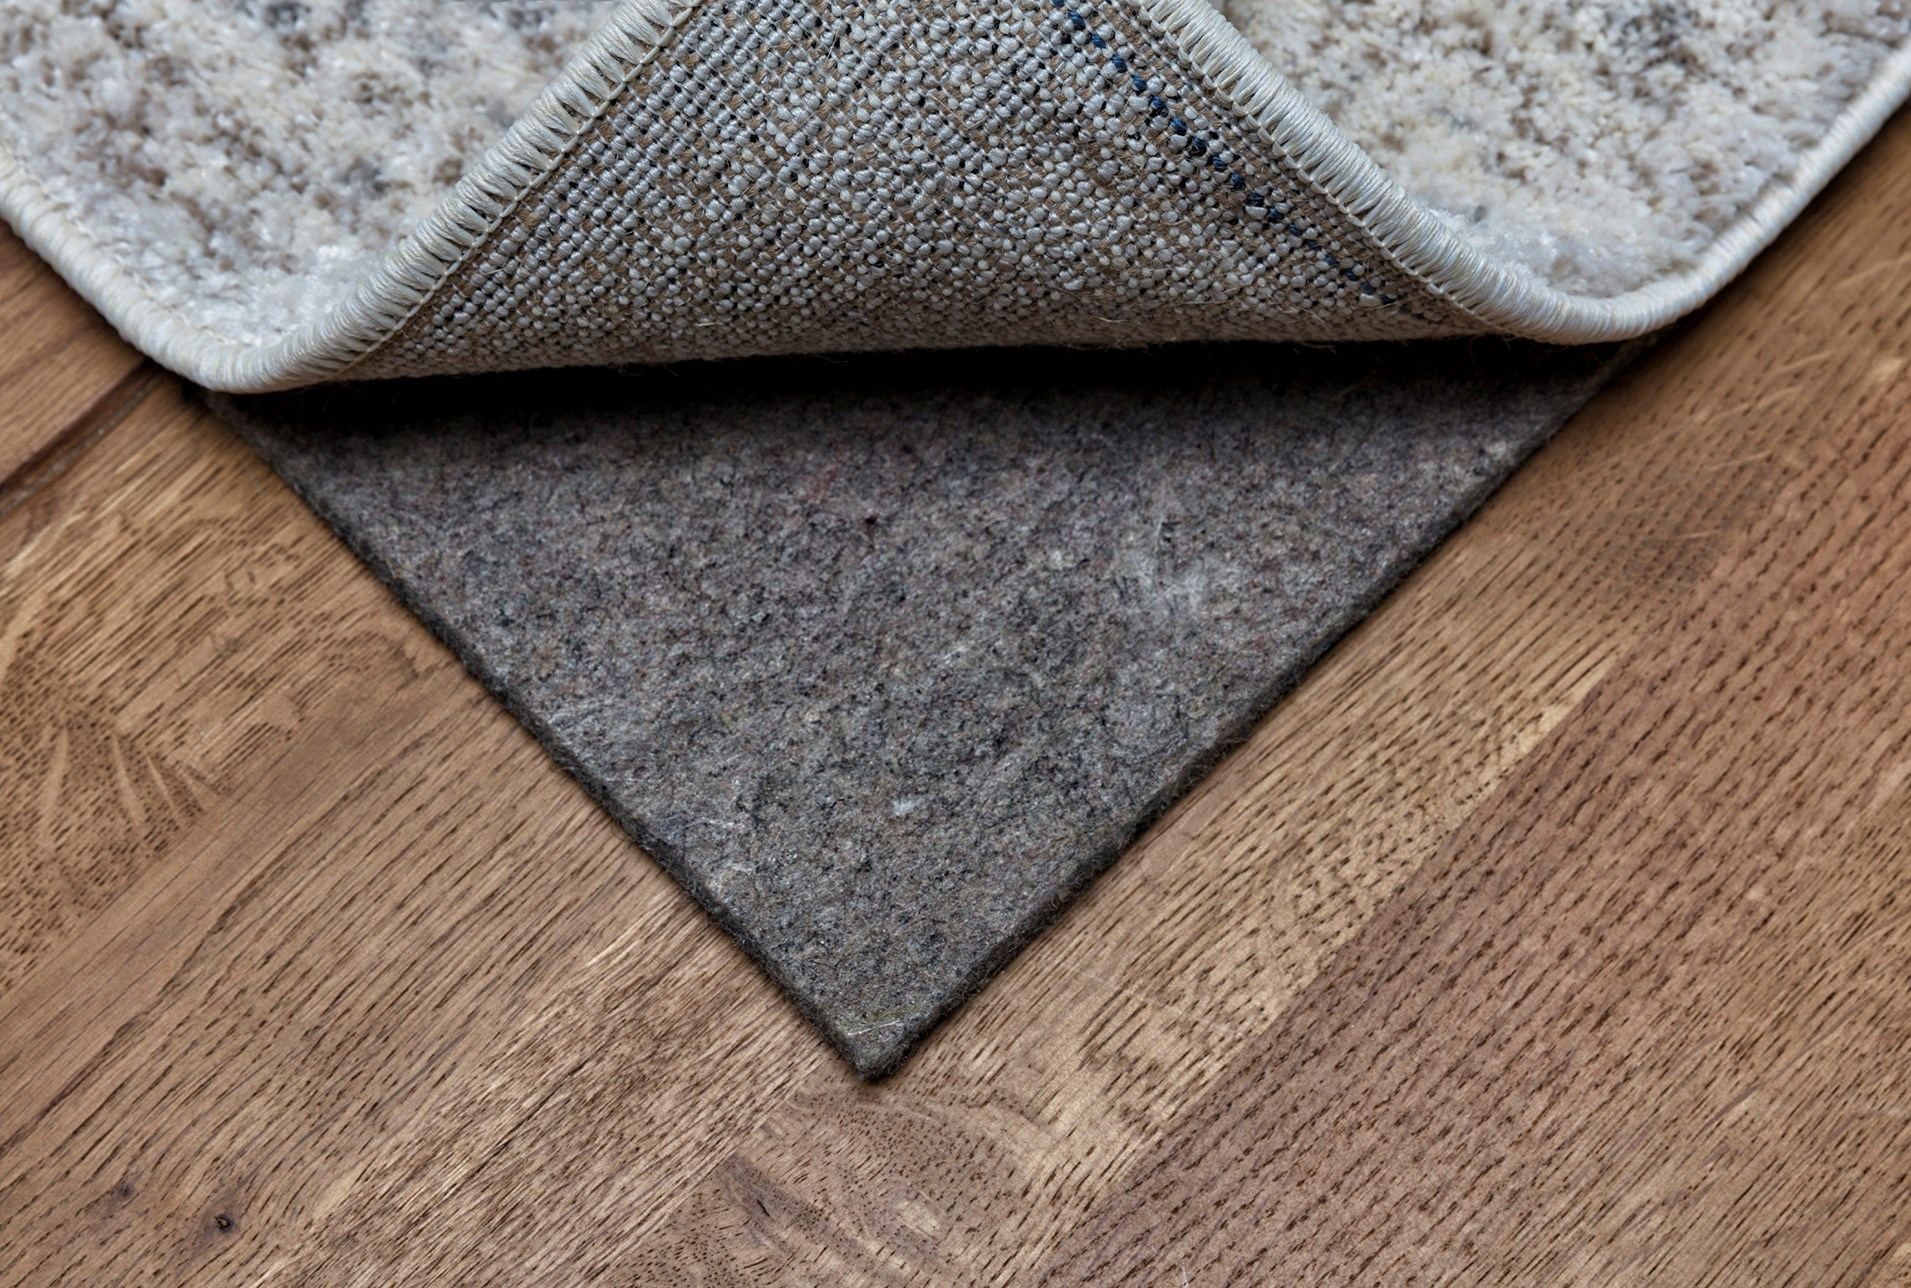 8x10 Rug Pad Luxehold Qty 1 Has Been Successfully Added To Your Cart